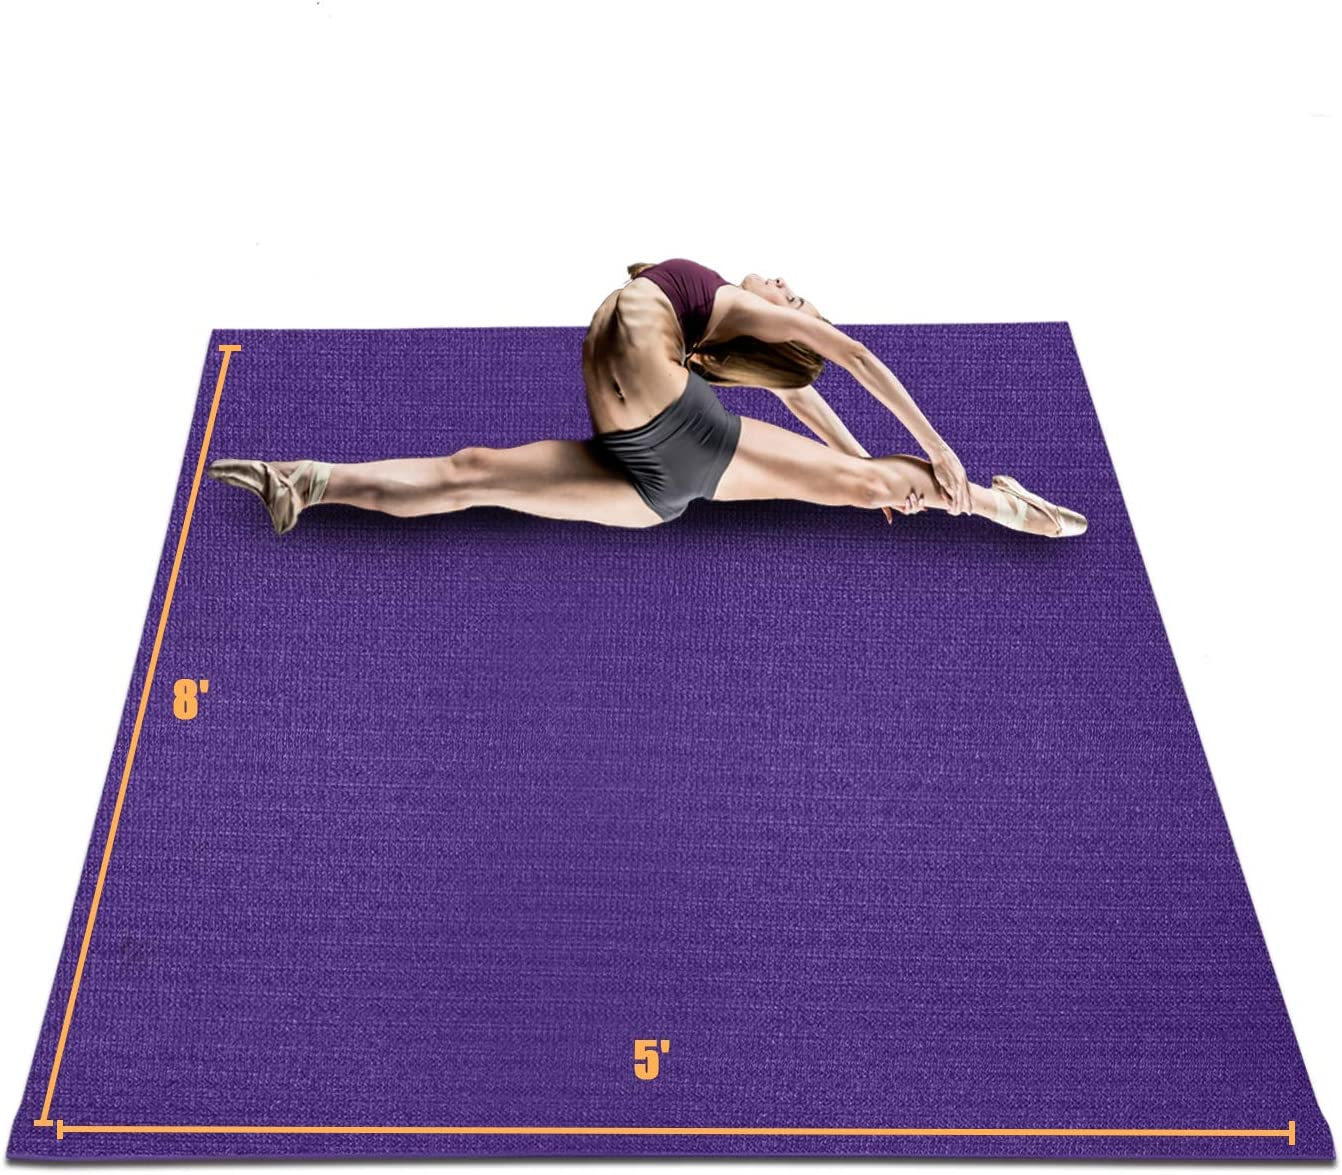 HYD-Parts Large Exercise Mat for Home Workout 8'x5'x7mm, Non-Slip Durable Gym Flooring Mats for Cardio Fitness